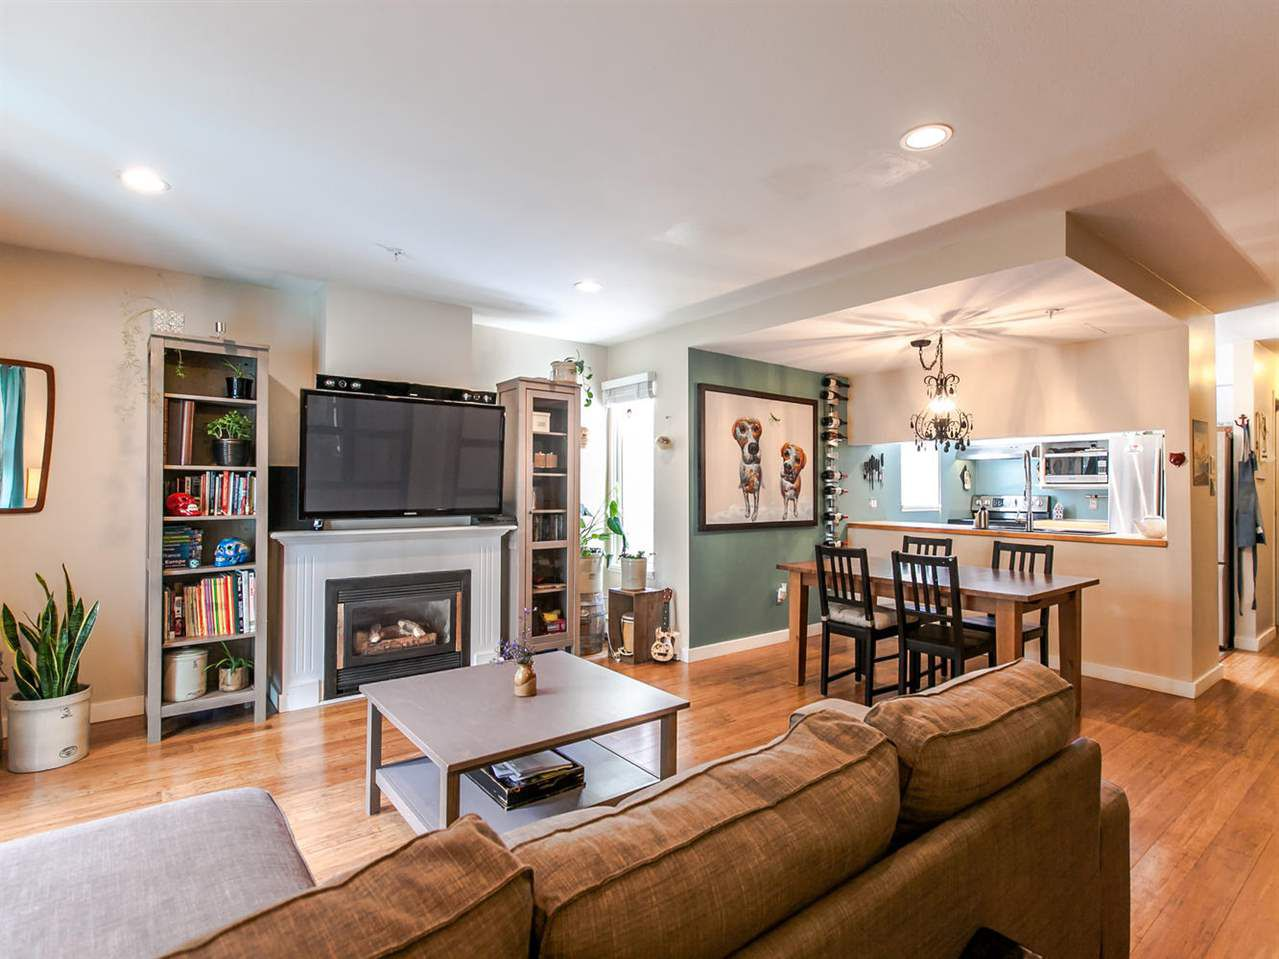 """Main Photo: 104 1554 BURNABY Street in Vancouver: West End VW Condo for sale in """"MCCOY MANOR"""" (Vancouver West)  : MLS®# R2089481"""